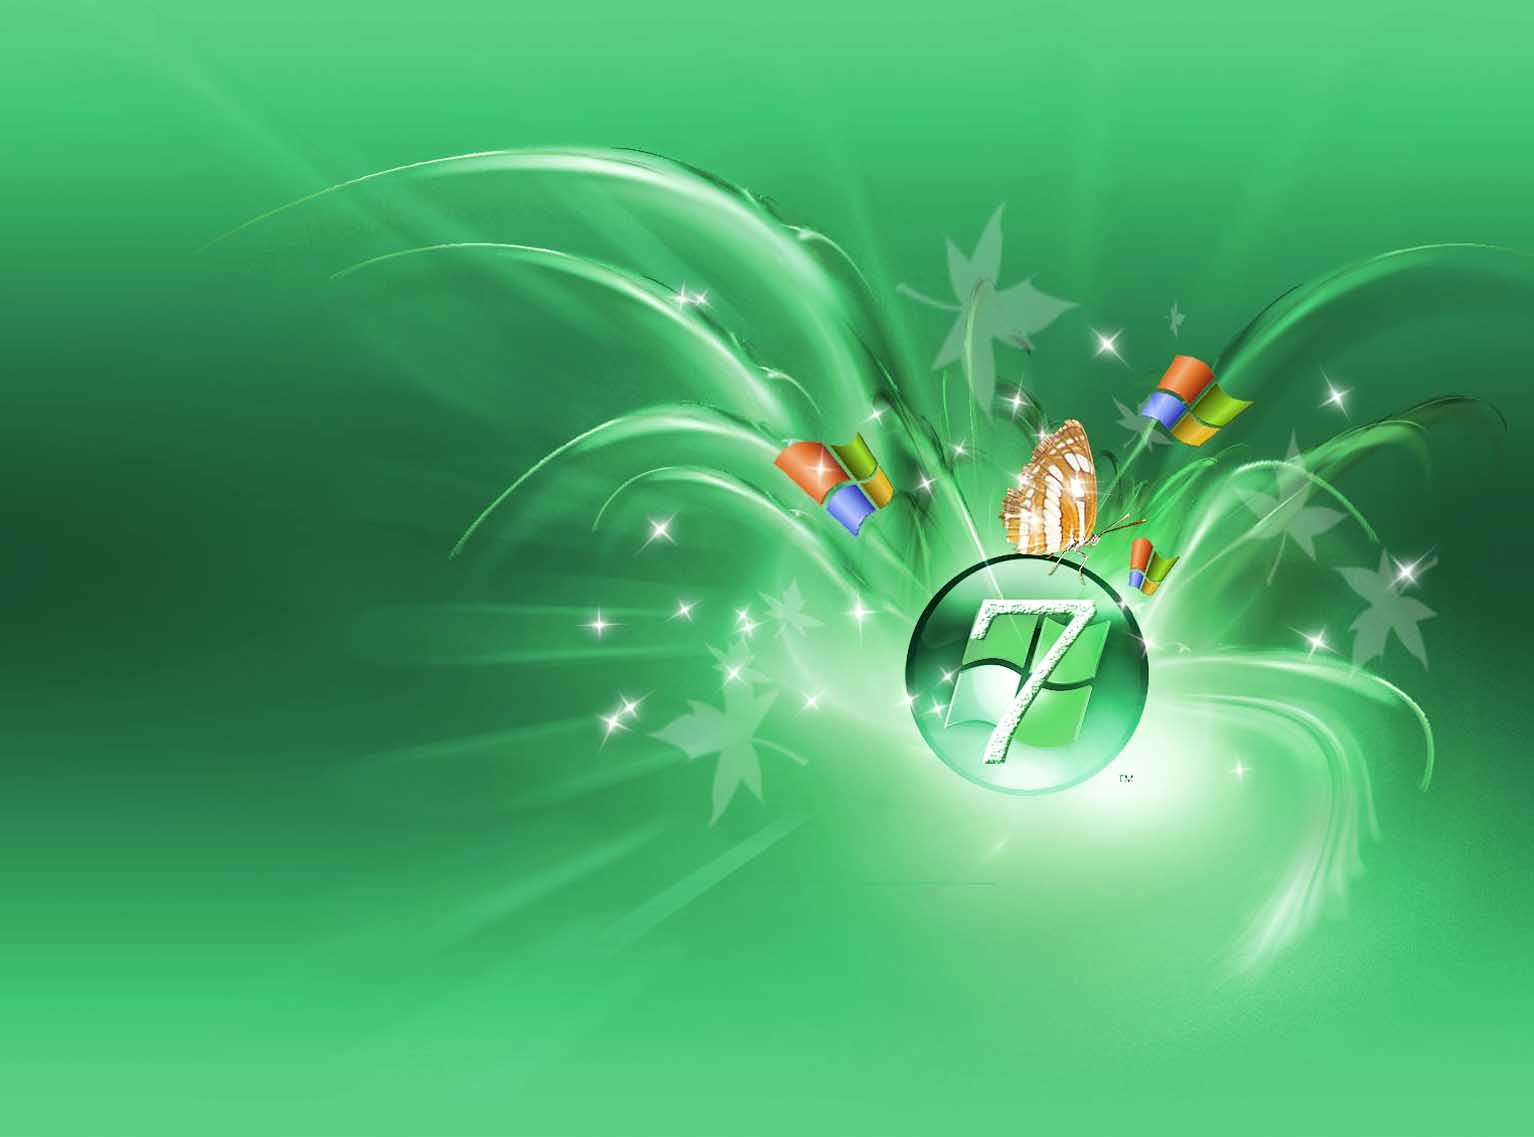 HD wallpapers for windows 7 ultimate download Elegance 1534x1137